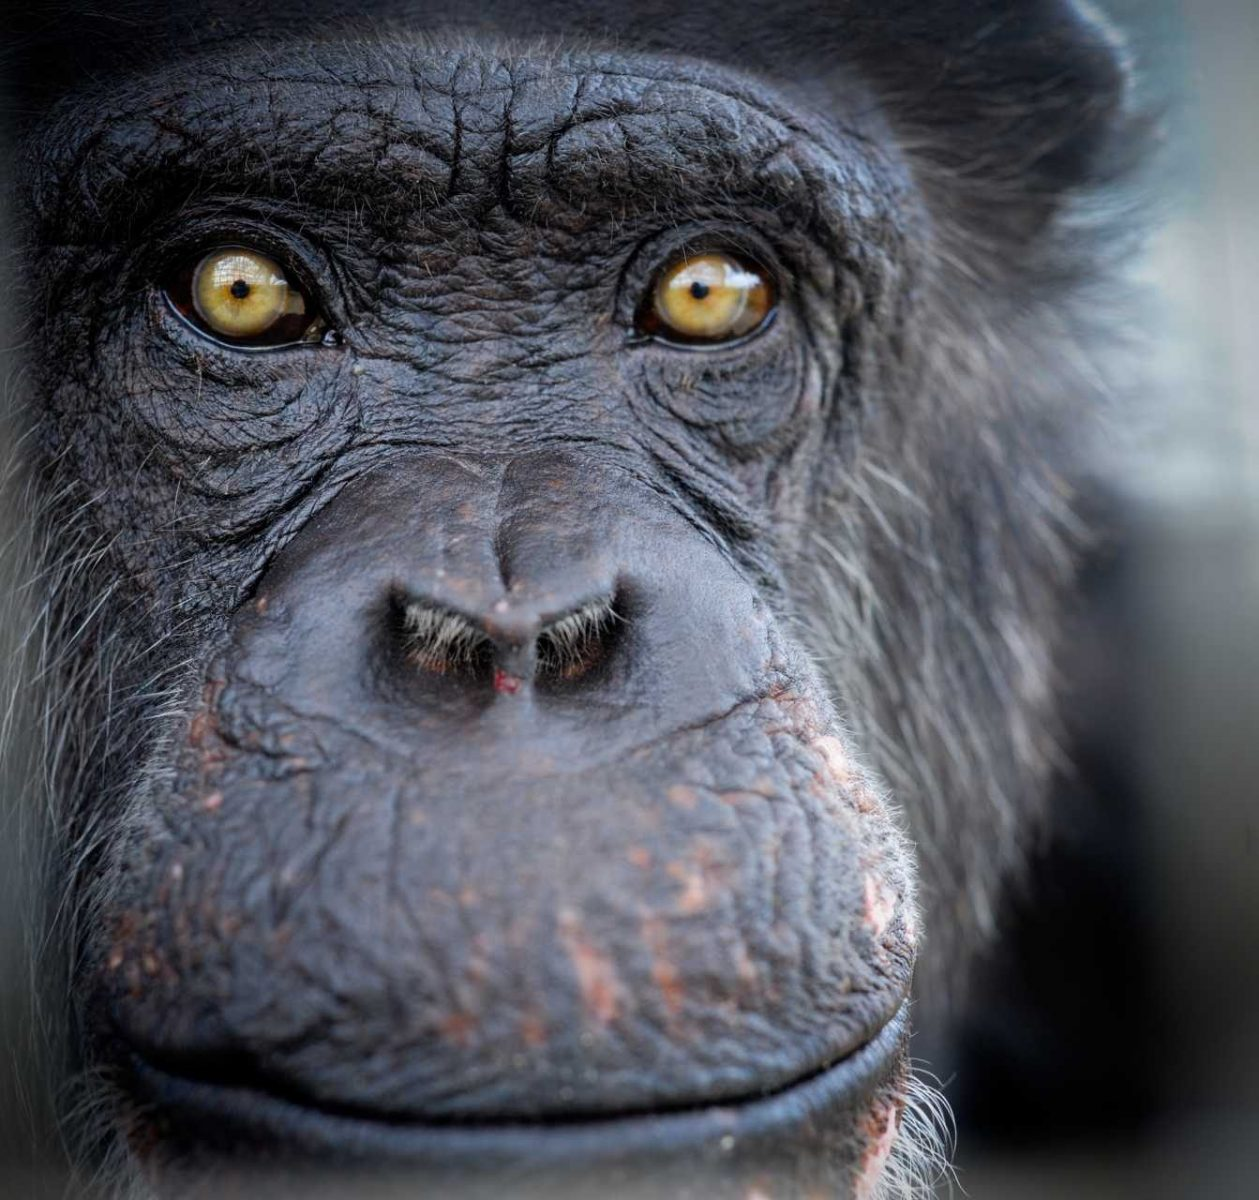 Pepsi, a chimpanzee rescued from research. He lives at Save the Chimps. USA